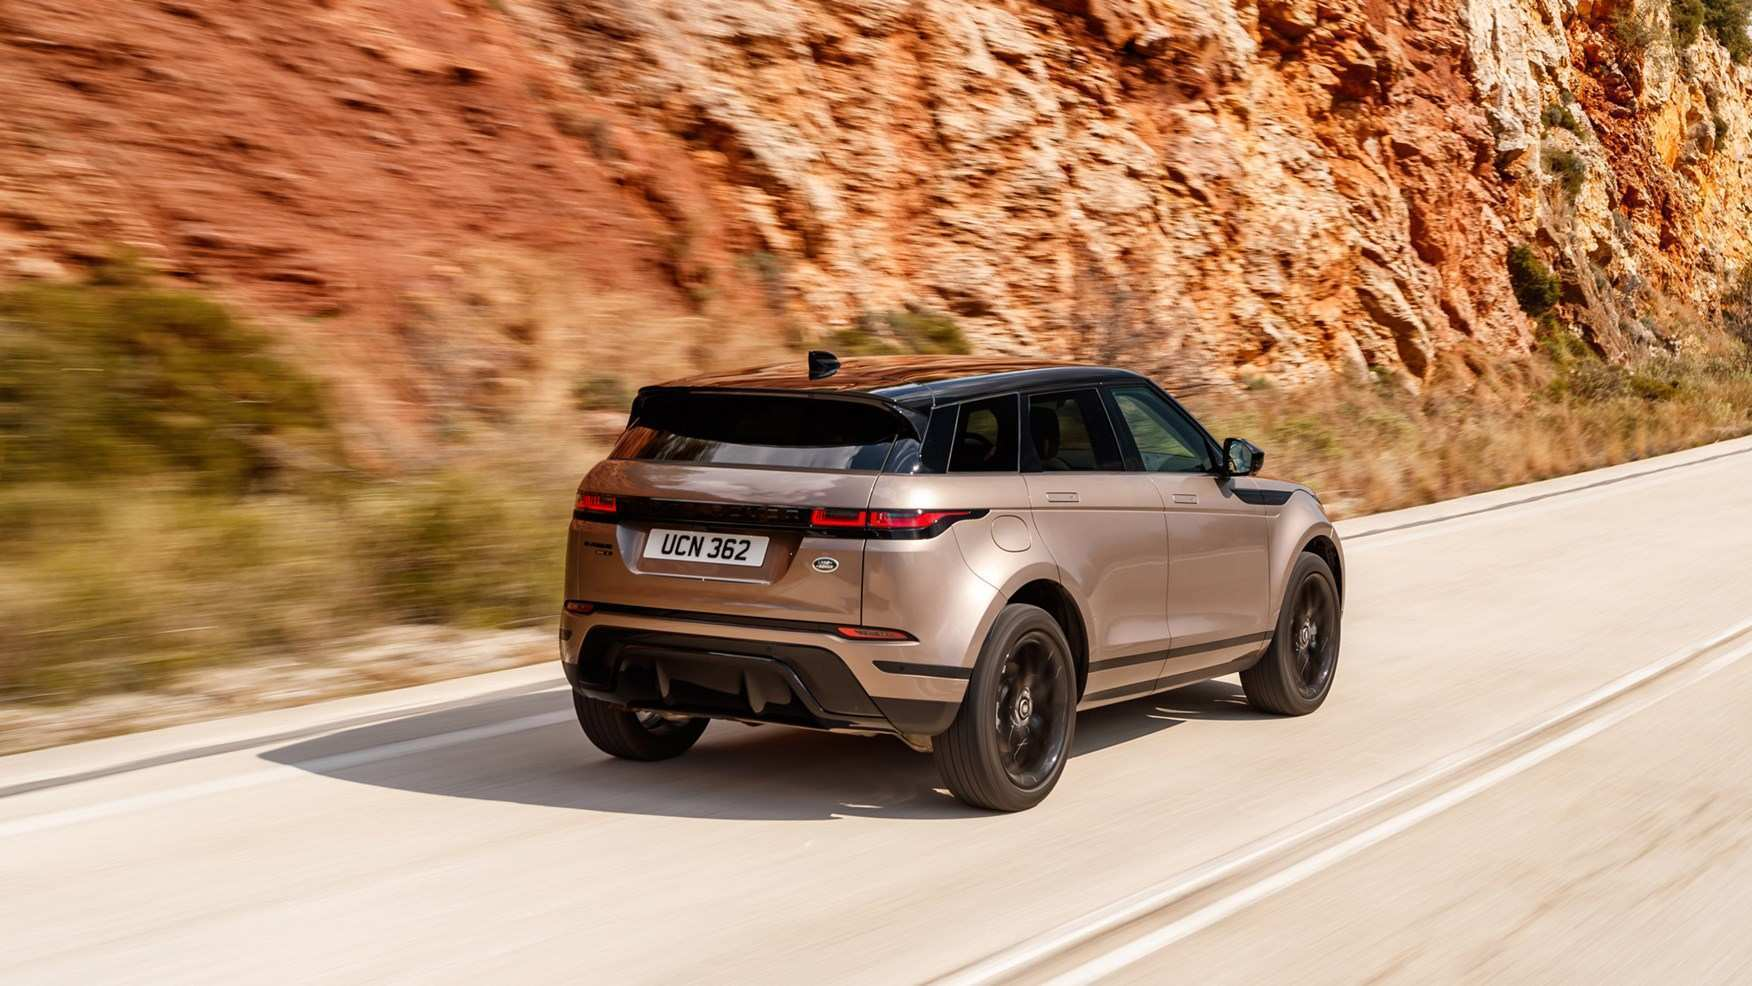 66 All New 2019 Range Rover Evoque First Drive